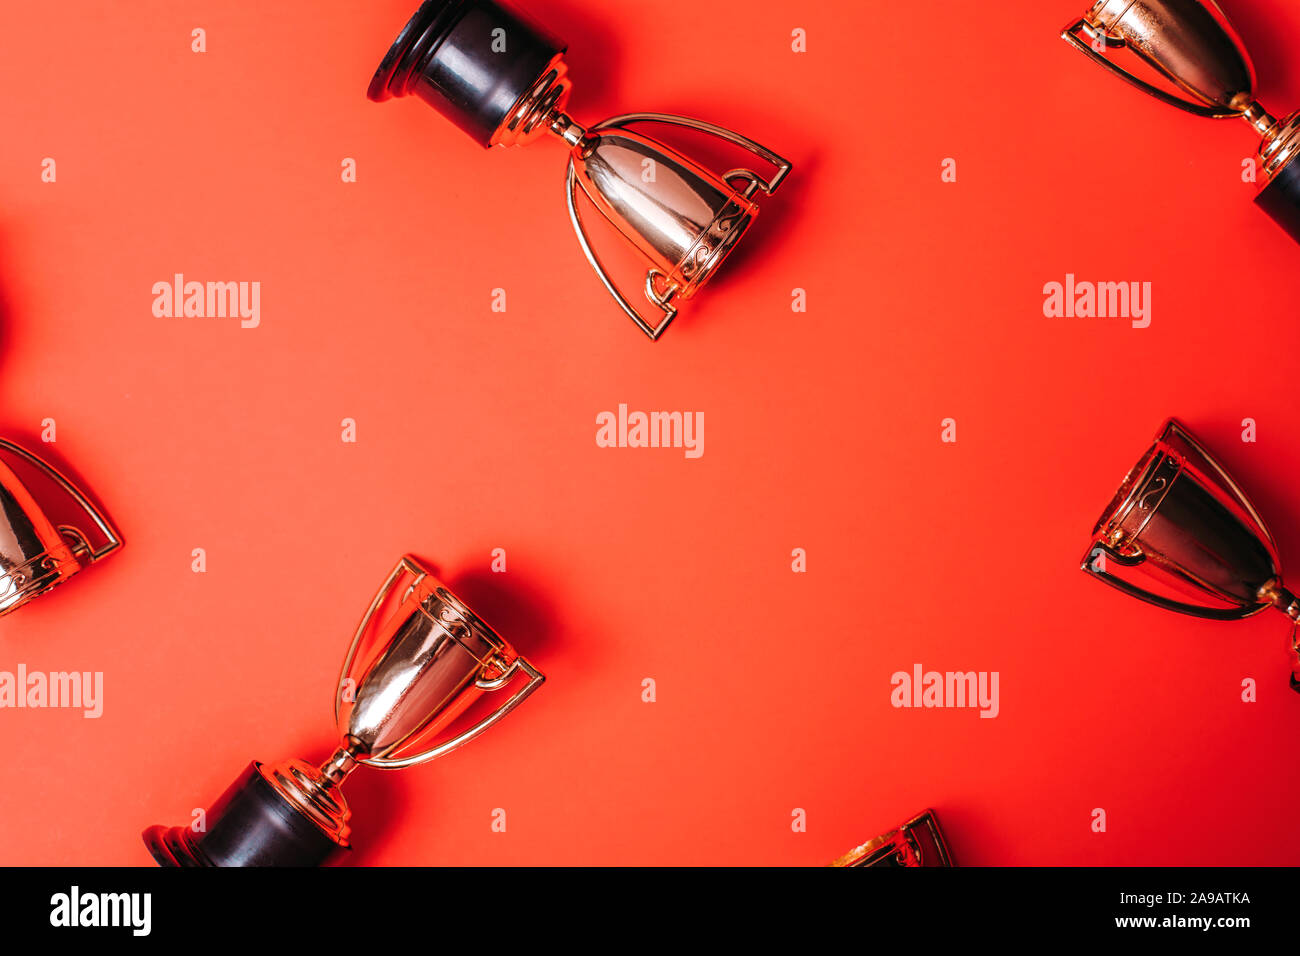 Winner or champion cup on bright background, Flat lay style. Open composition. Stock Photo